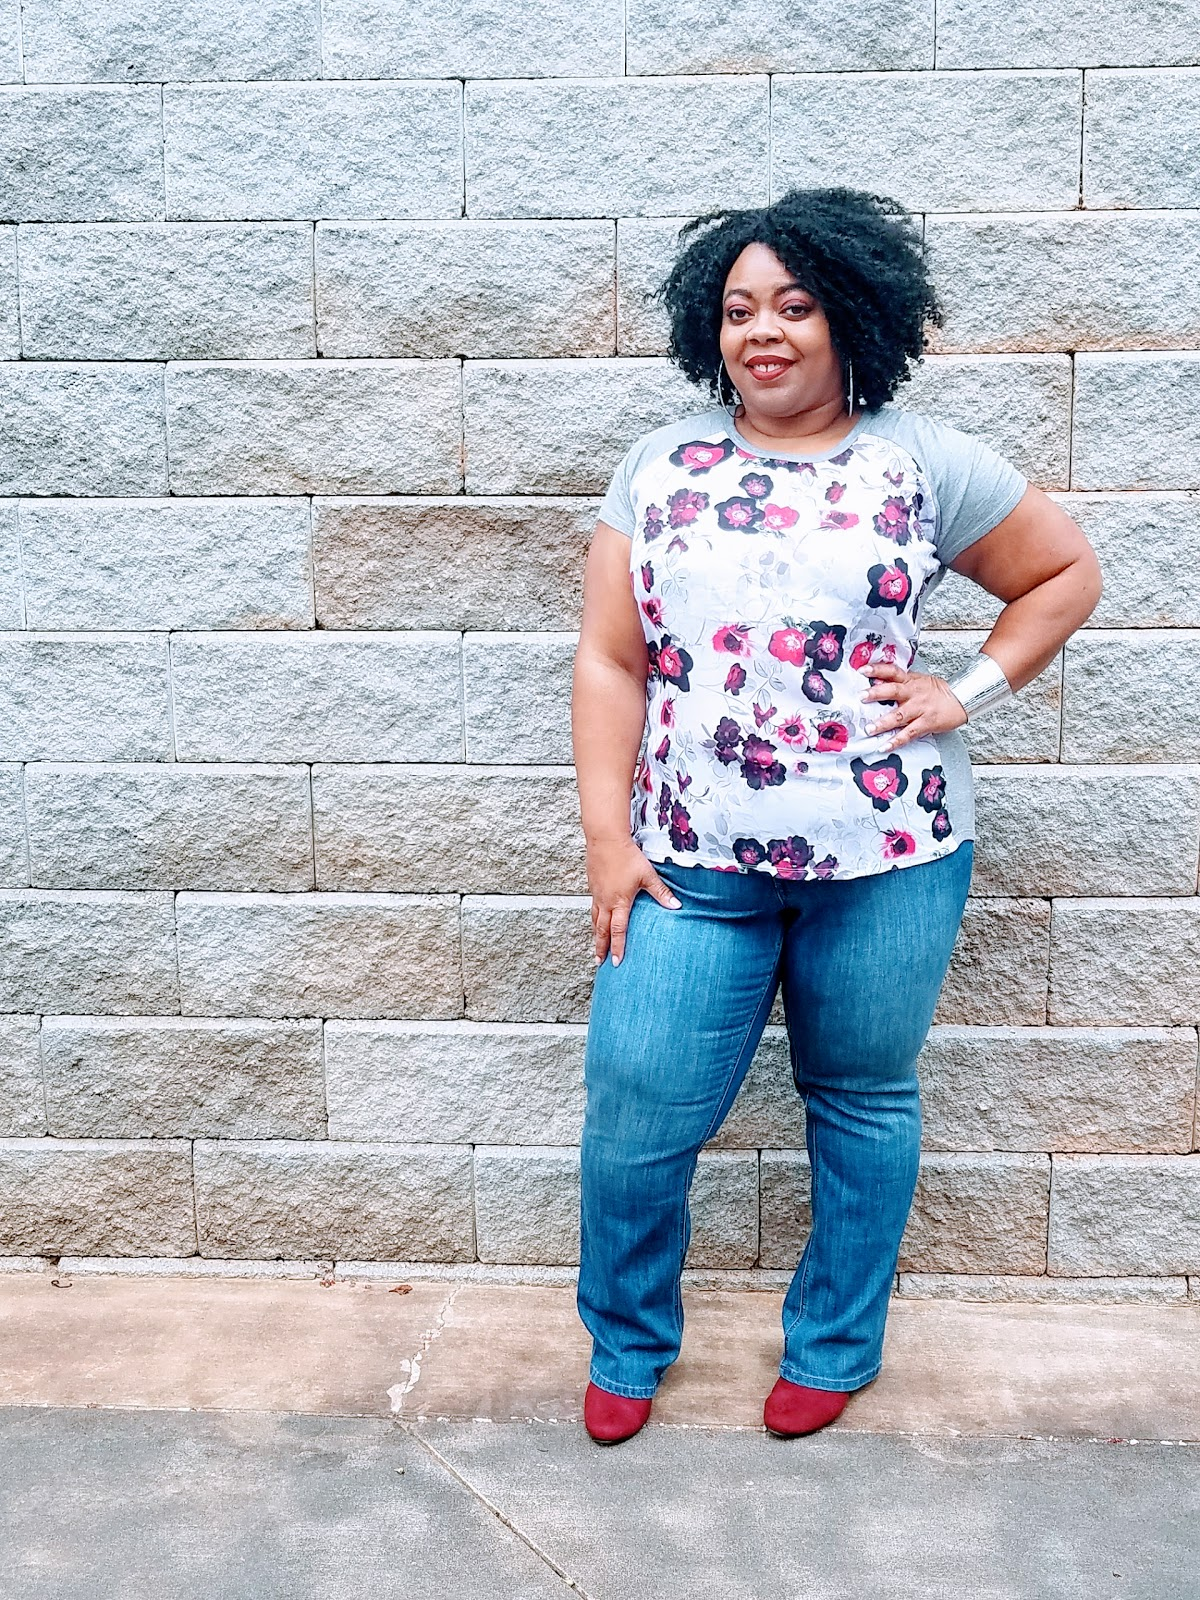 plus size model, curvy girl, natural hair, floral top, faux suede booties, boot cut denim, arm cuff